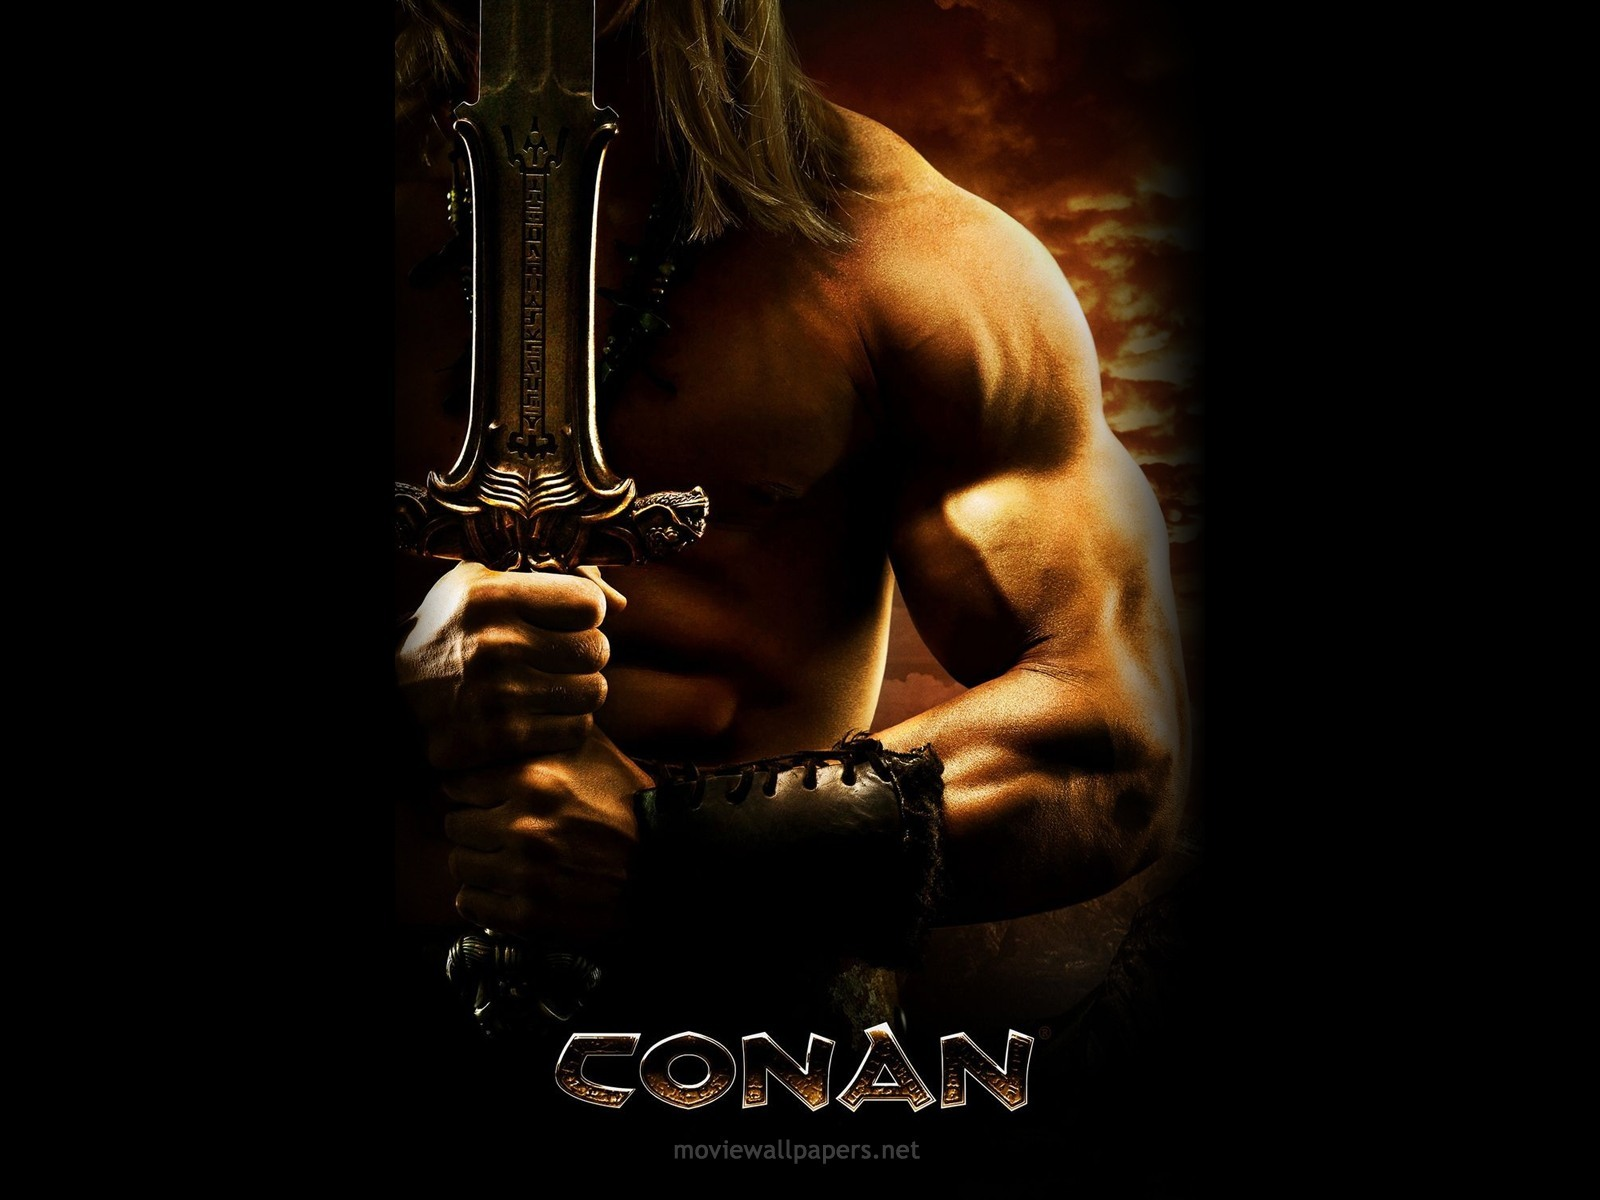 conan the barbarian hd wallpapers conan the barbarian pictures 1600x1200